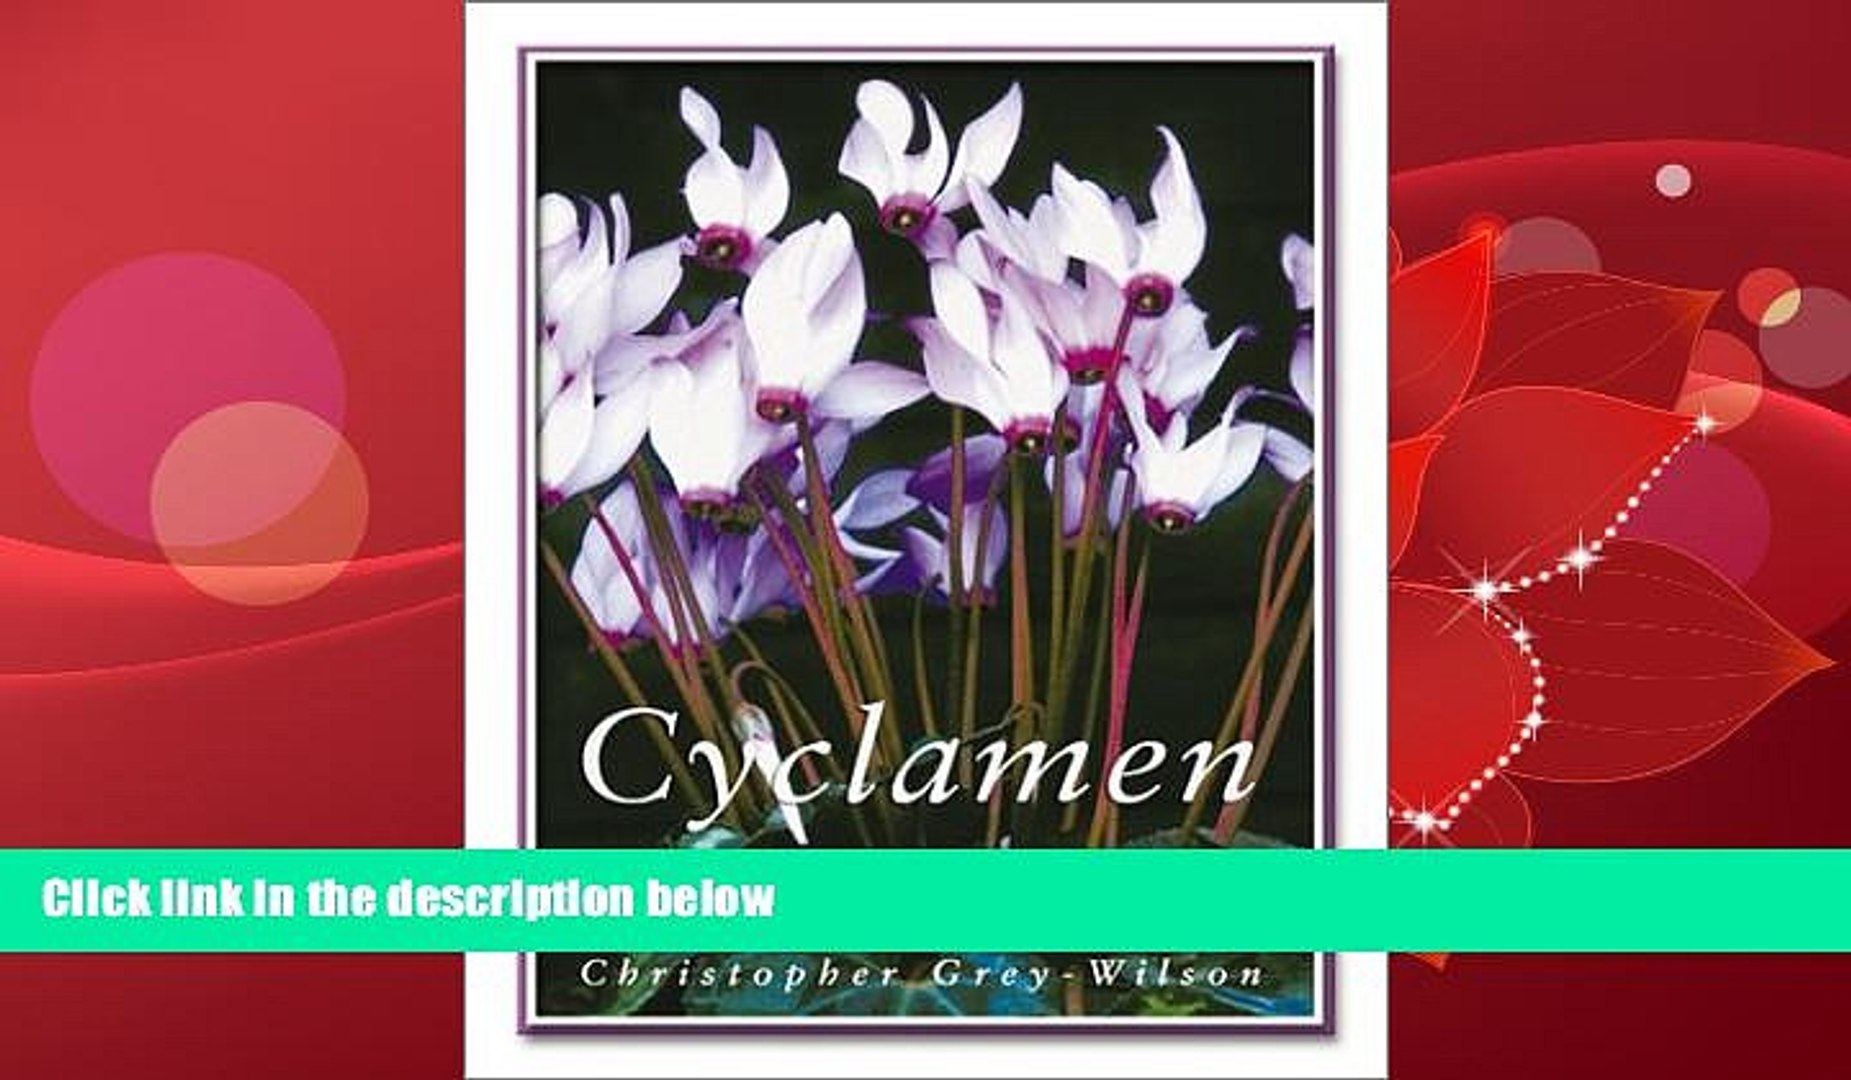 Choose Book Cyclamen: A Guide for Gardeners, Horticulturists and Botanists